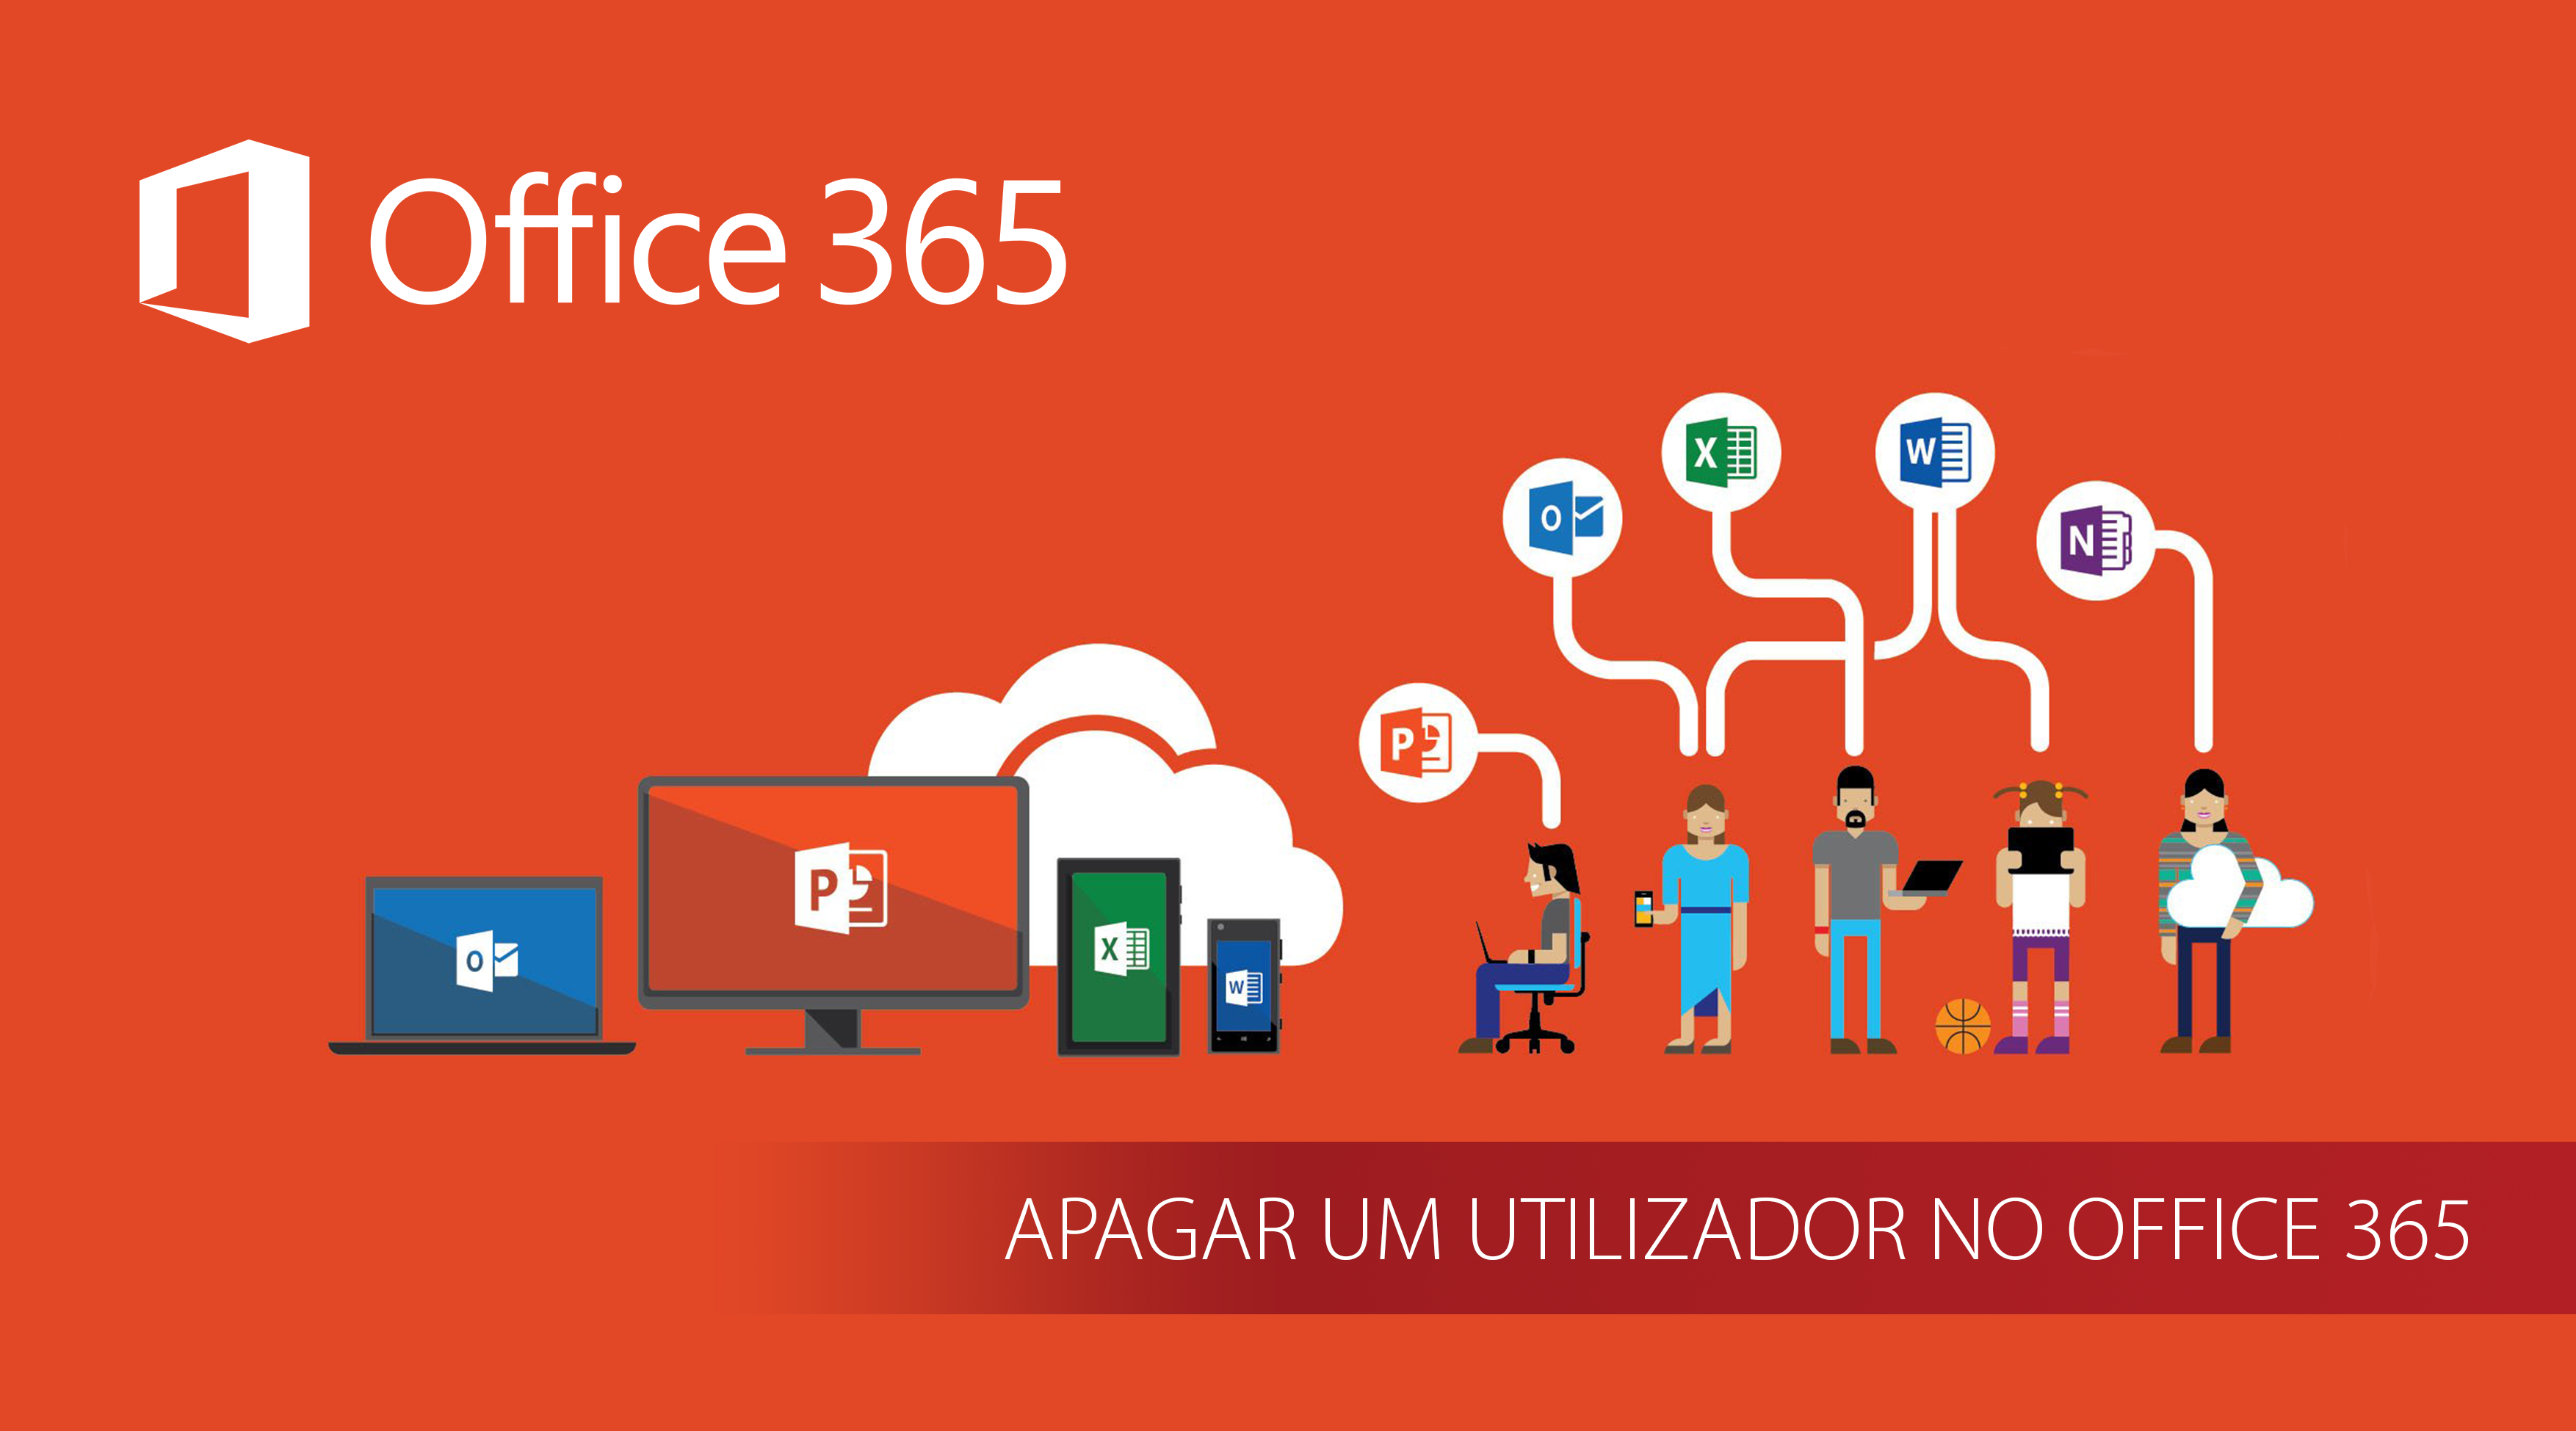 How To: Apagar um utilizador no Office 365